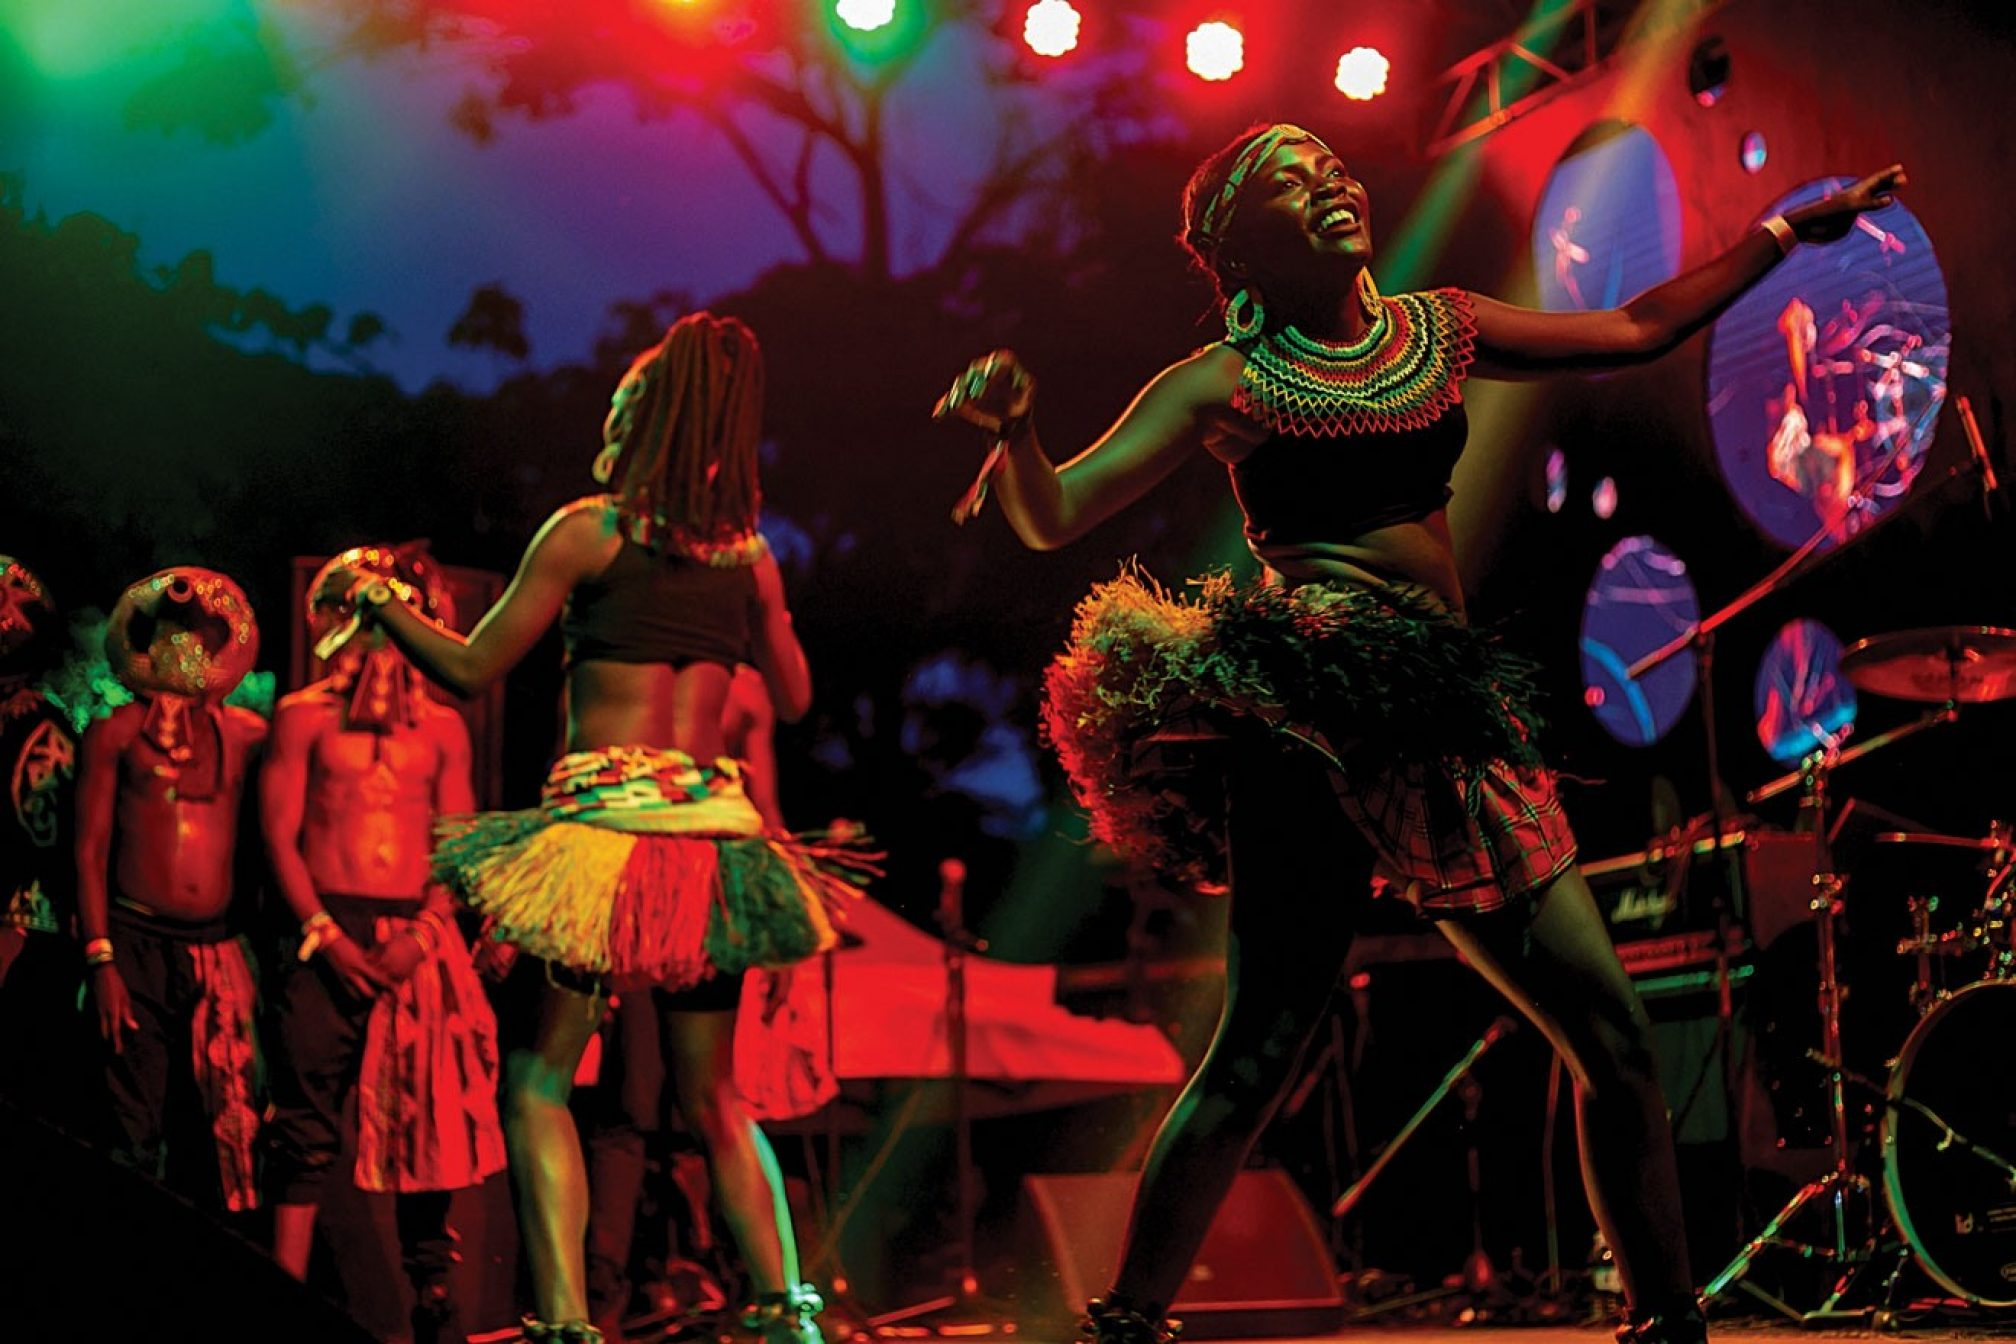 Nyege Nyege is a genuine, experimental African utopia at the source